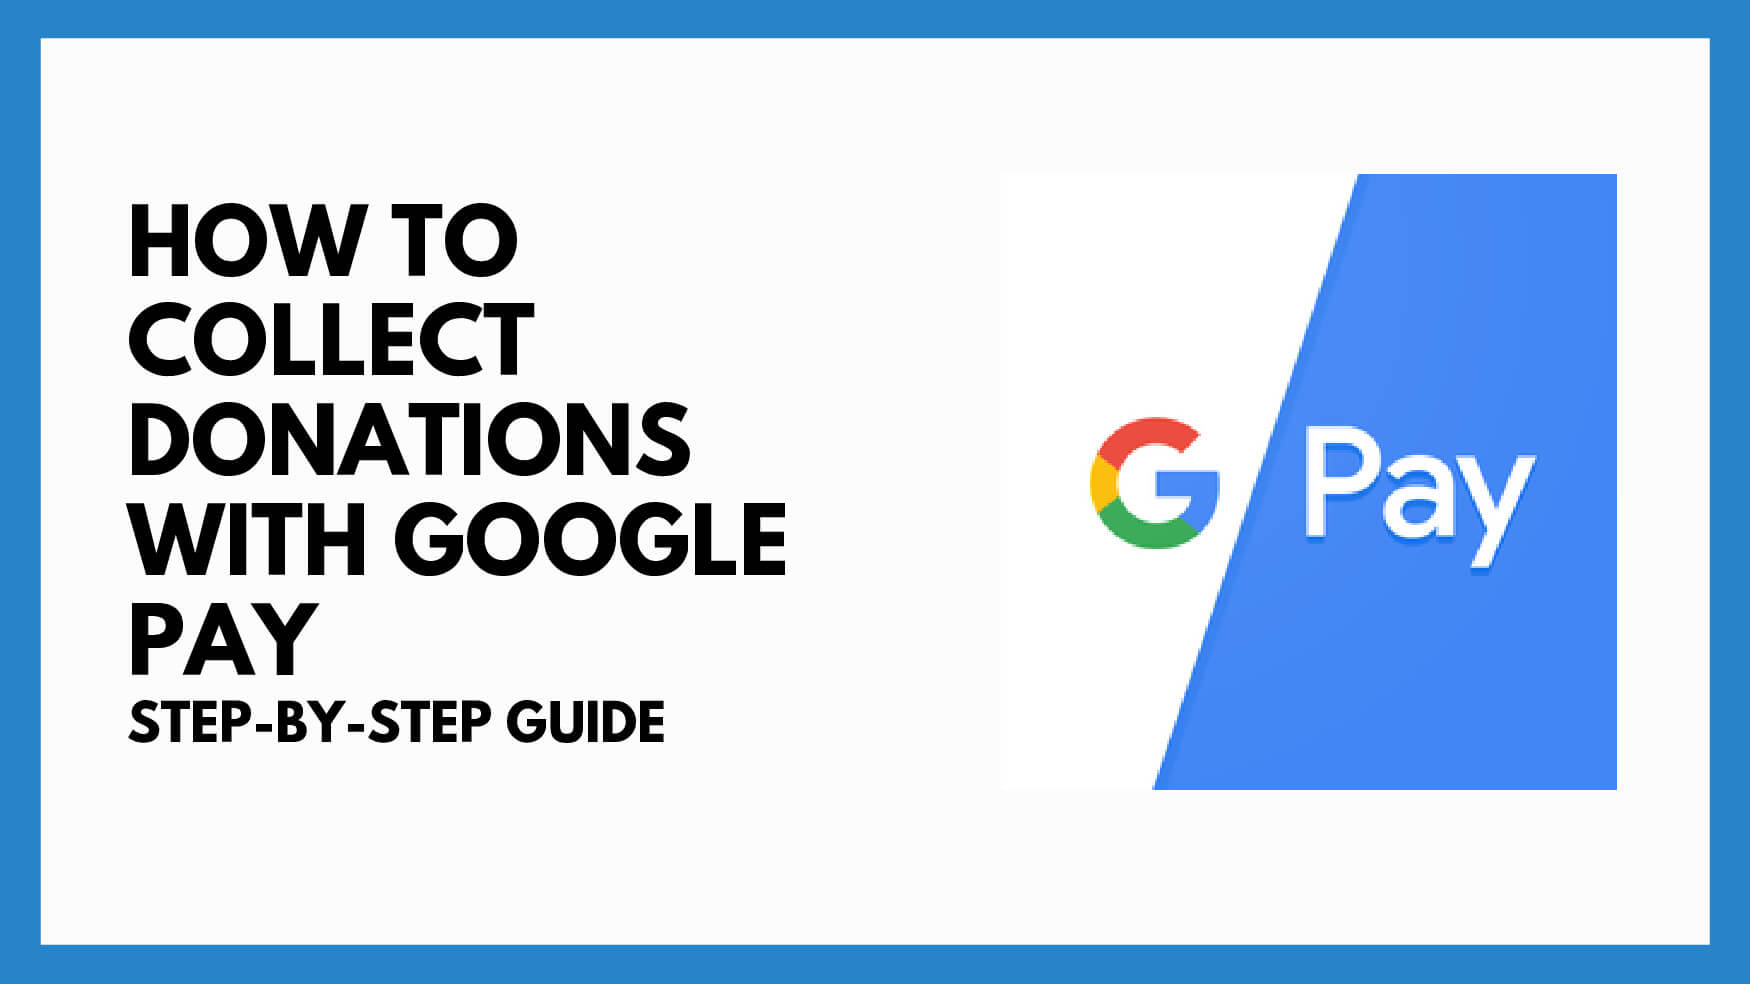 How To Collect Donations with Google Pay on Android & Chrome